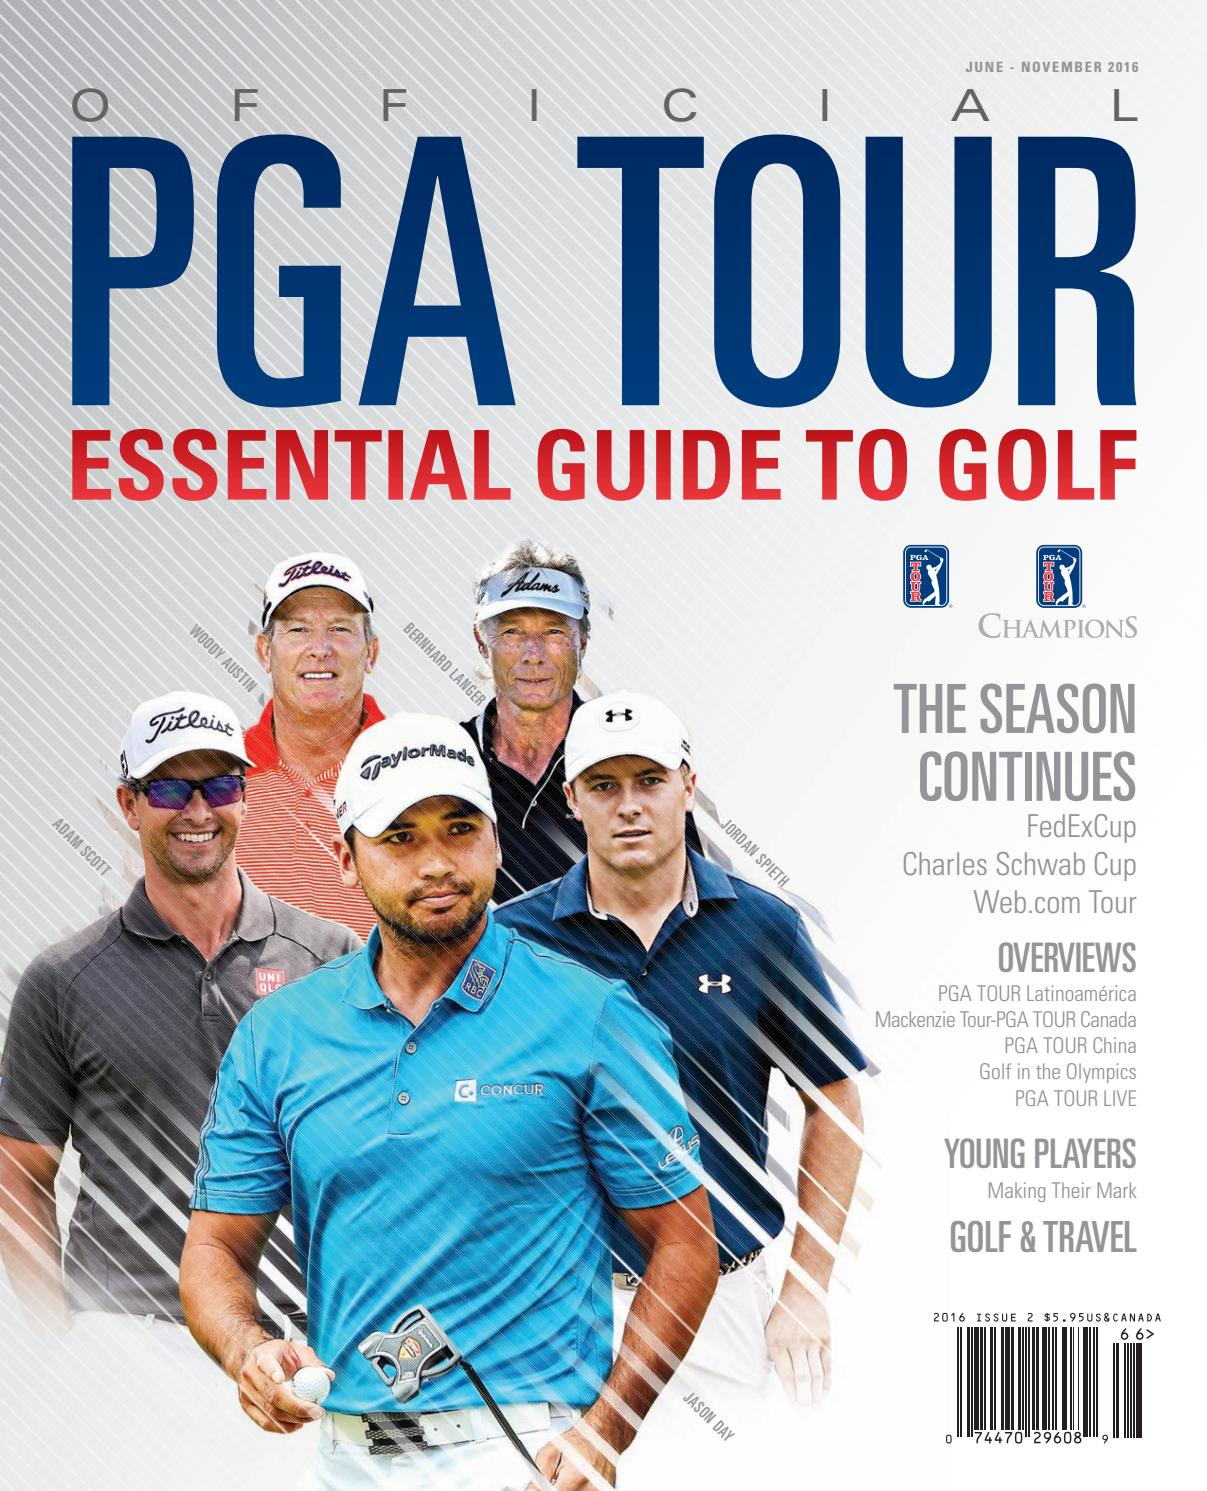 pga tour essential guide to golf 2016 part 2 by magazine